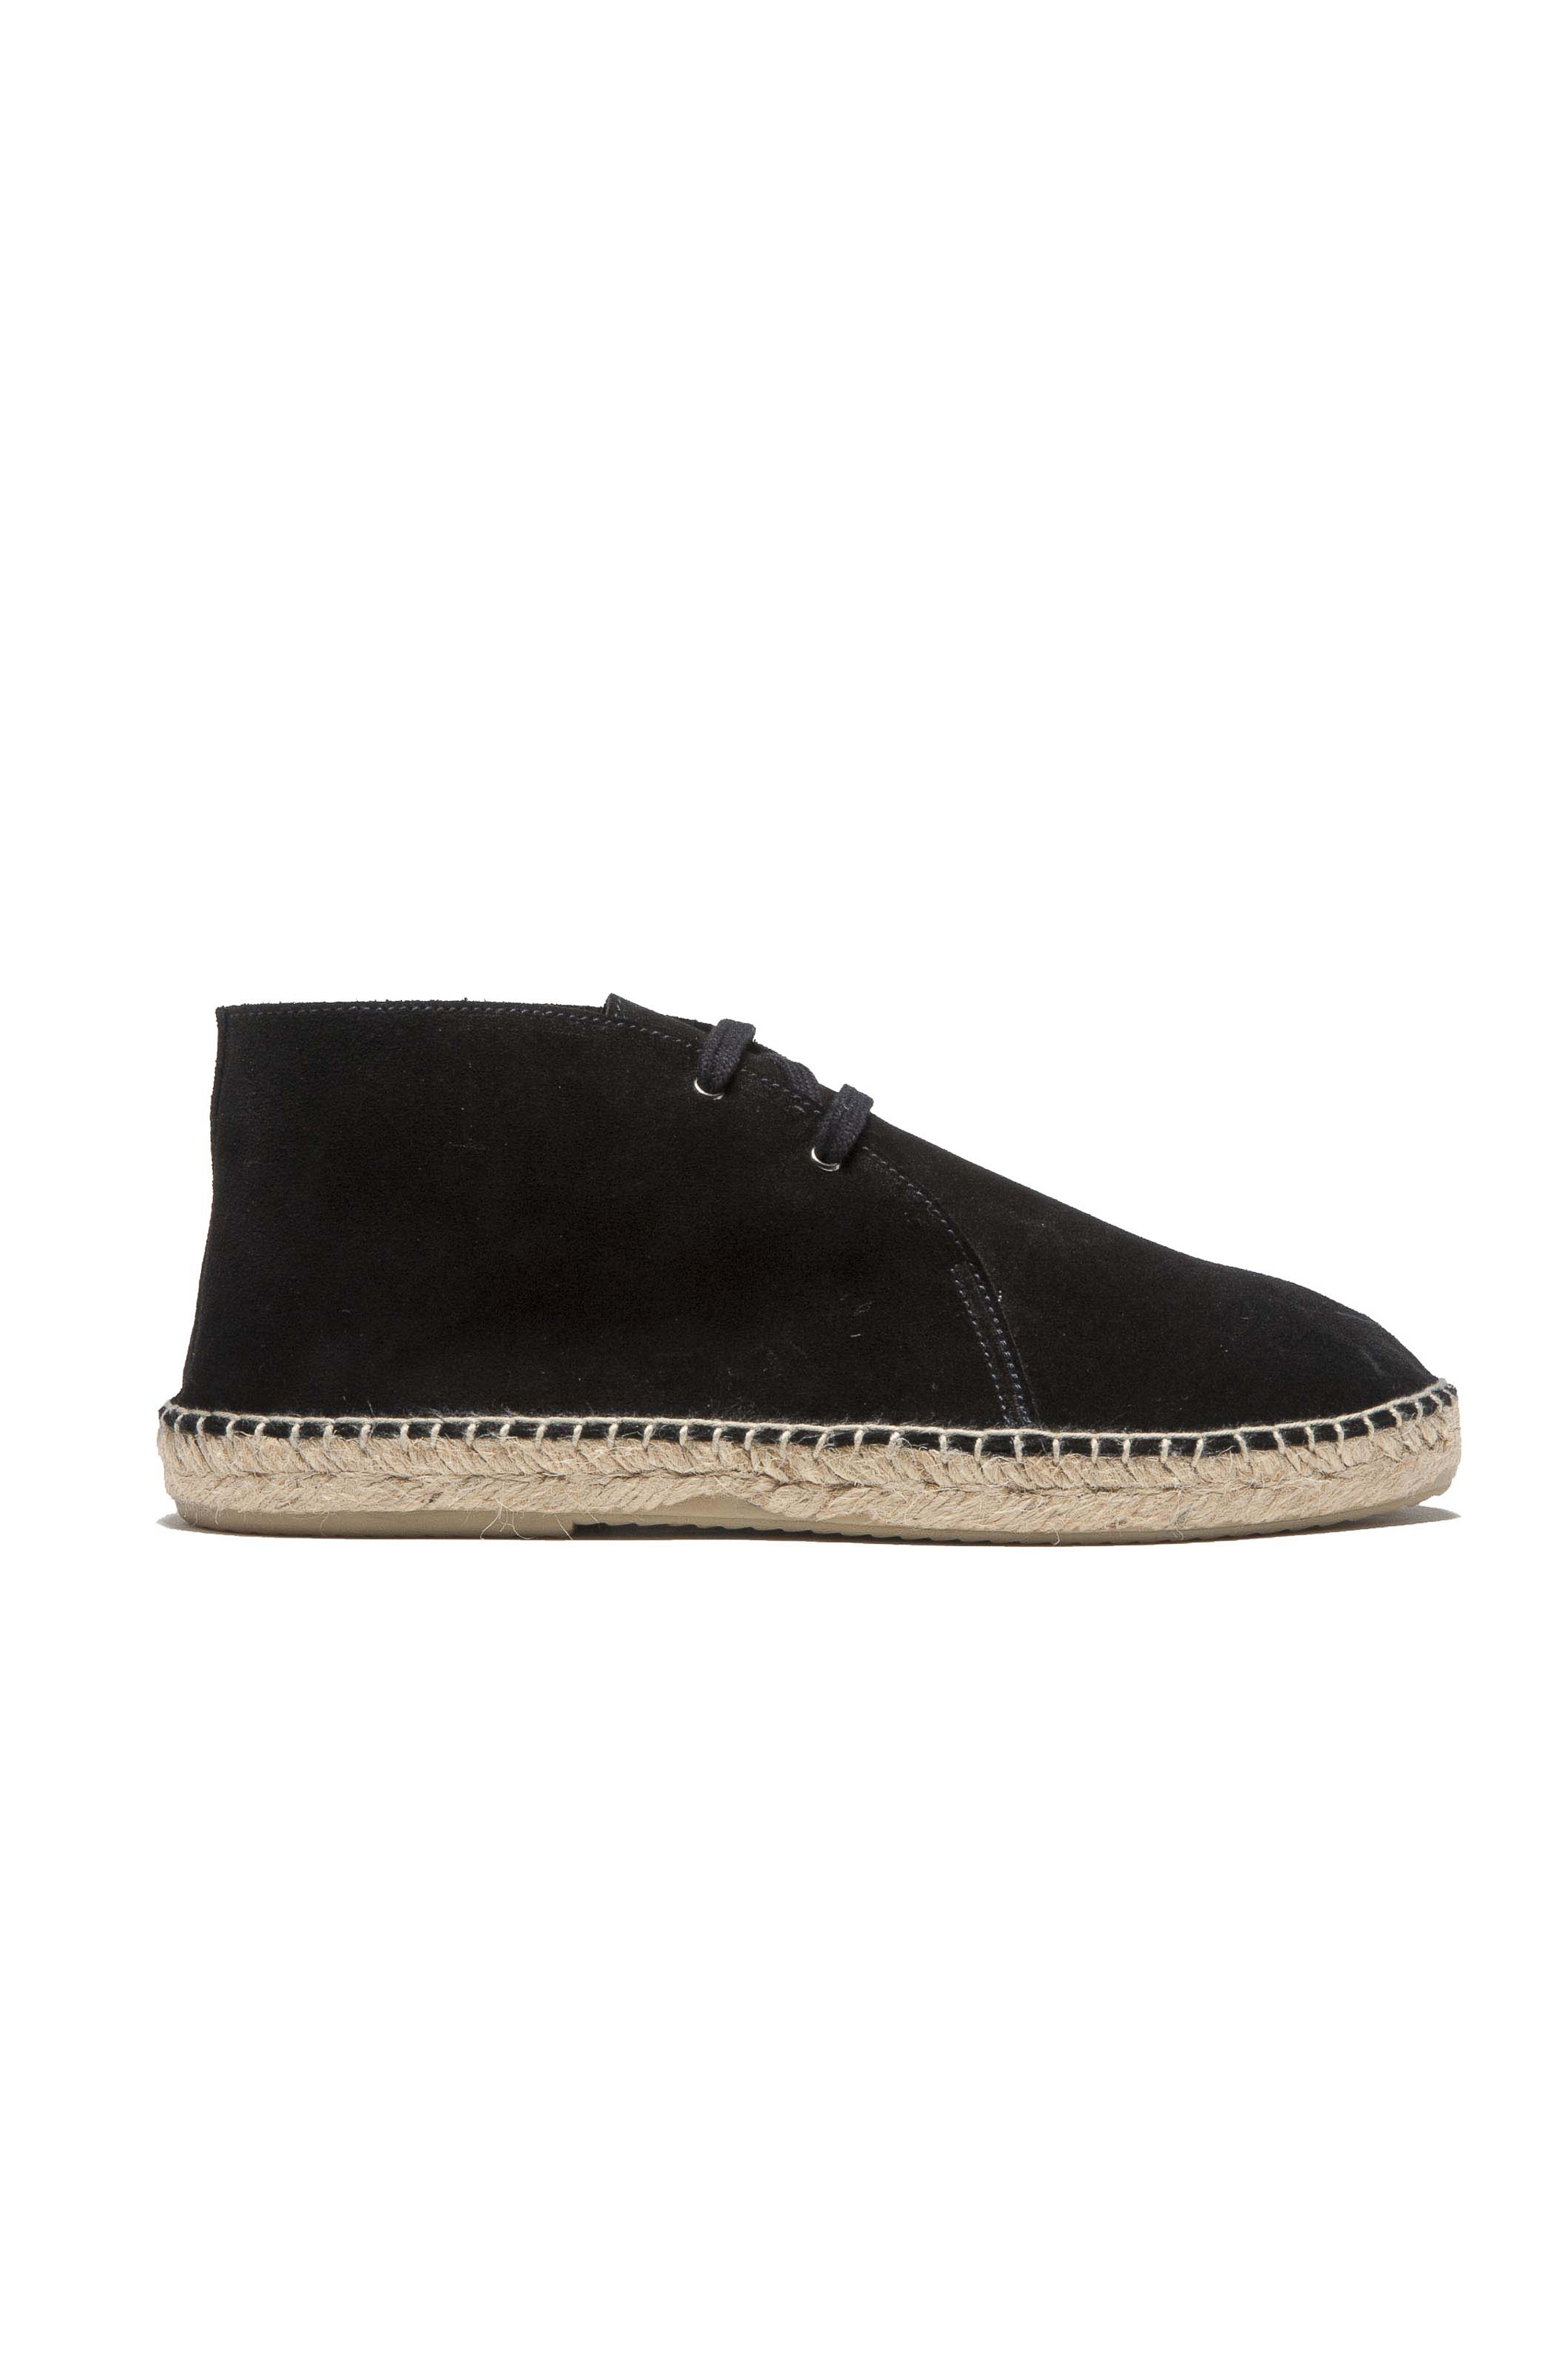 SBU 01707 Original black suede leather lace up espadrilles with rubber sole 01